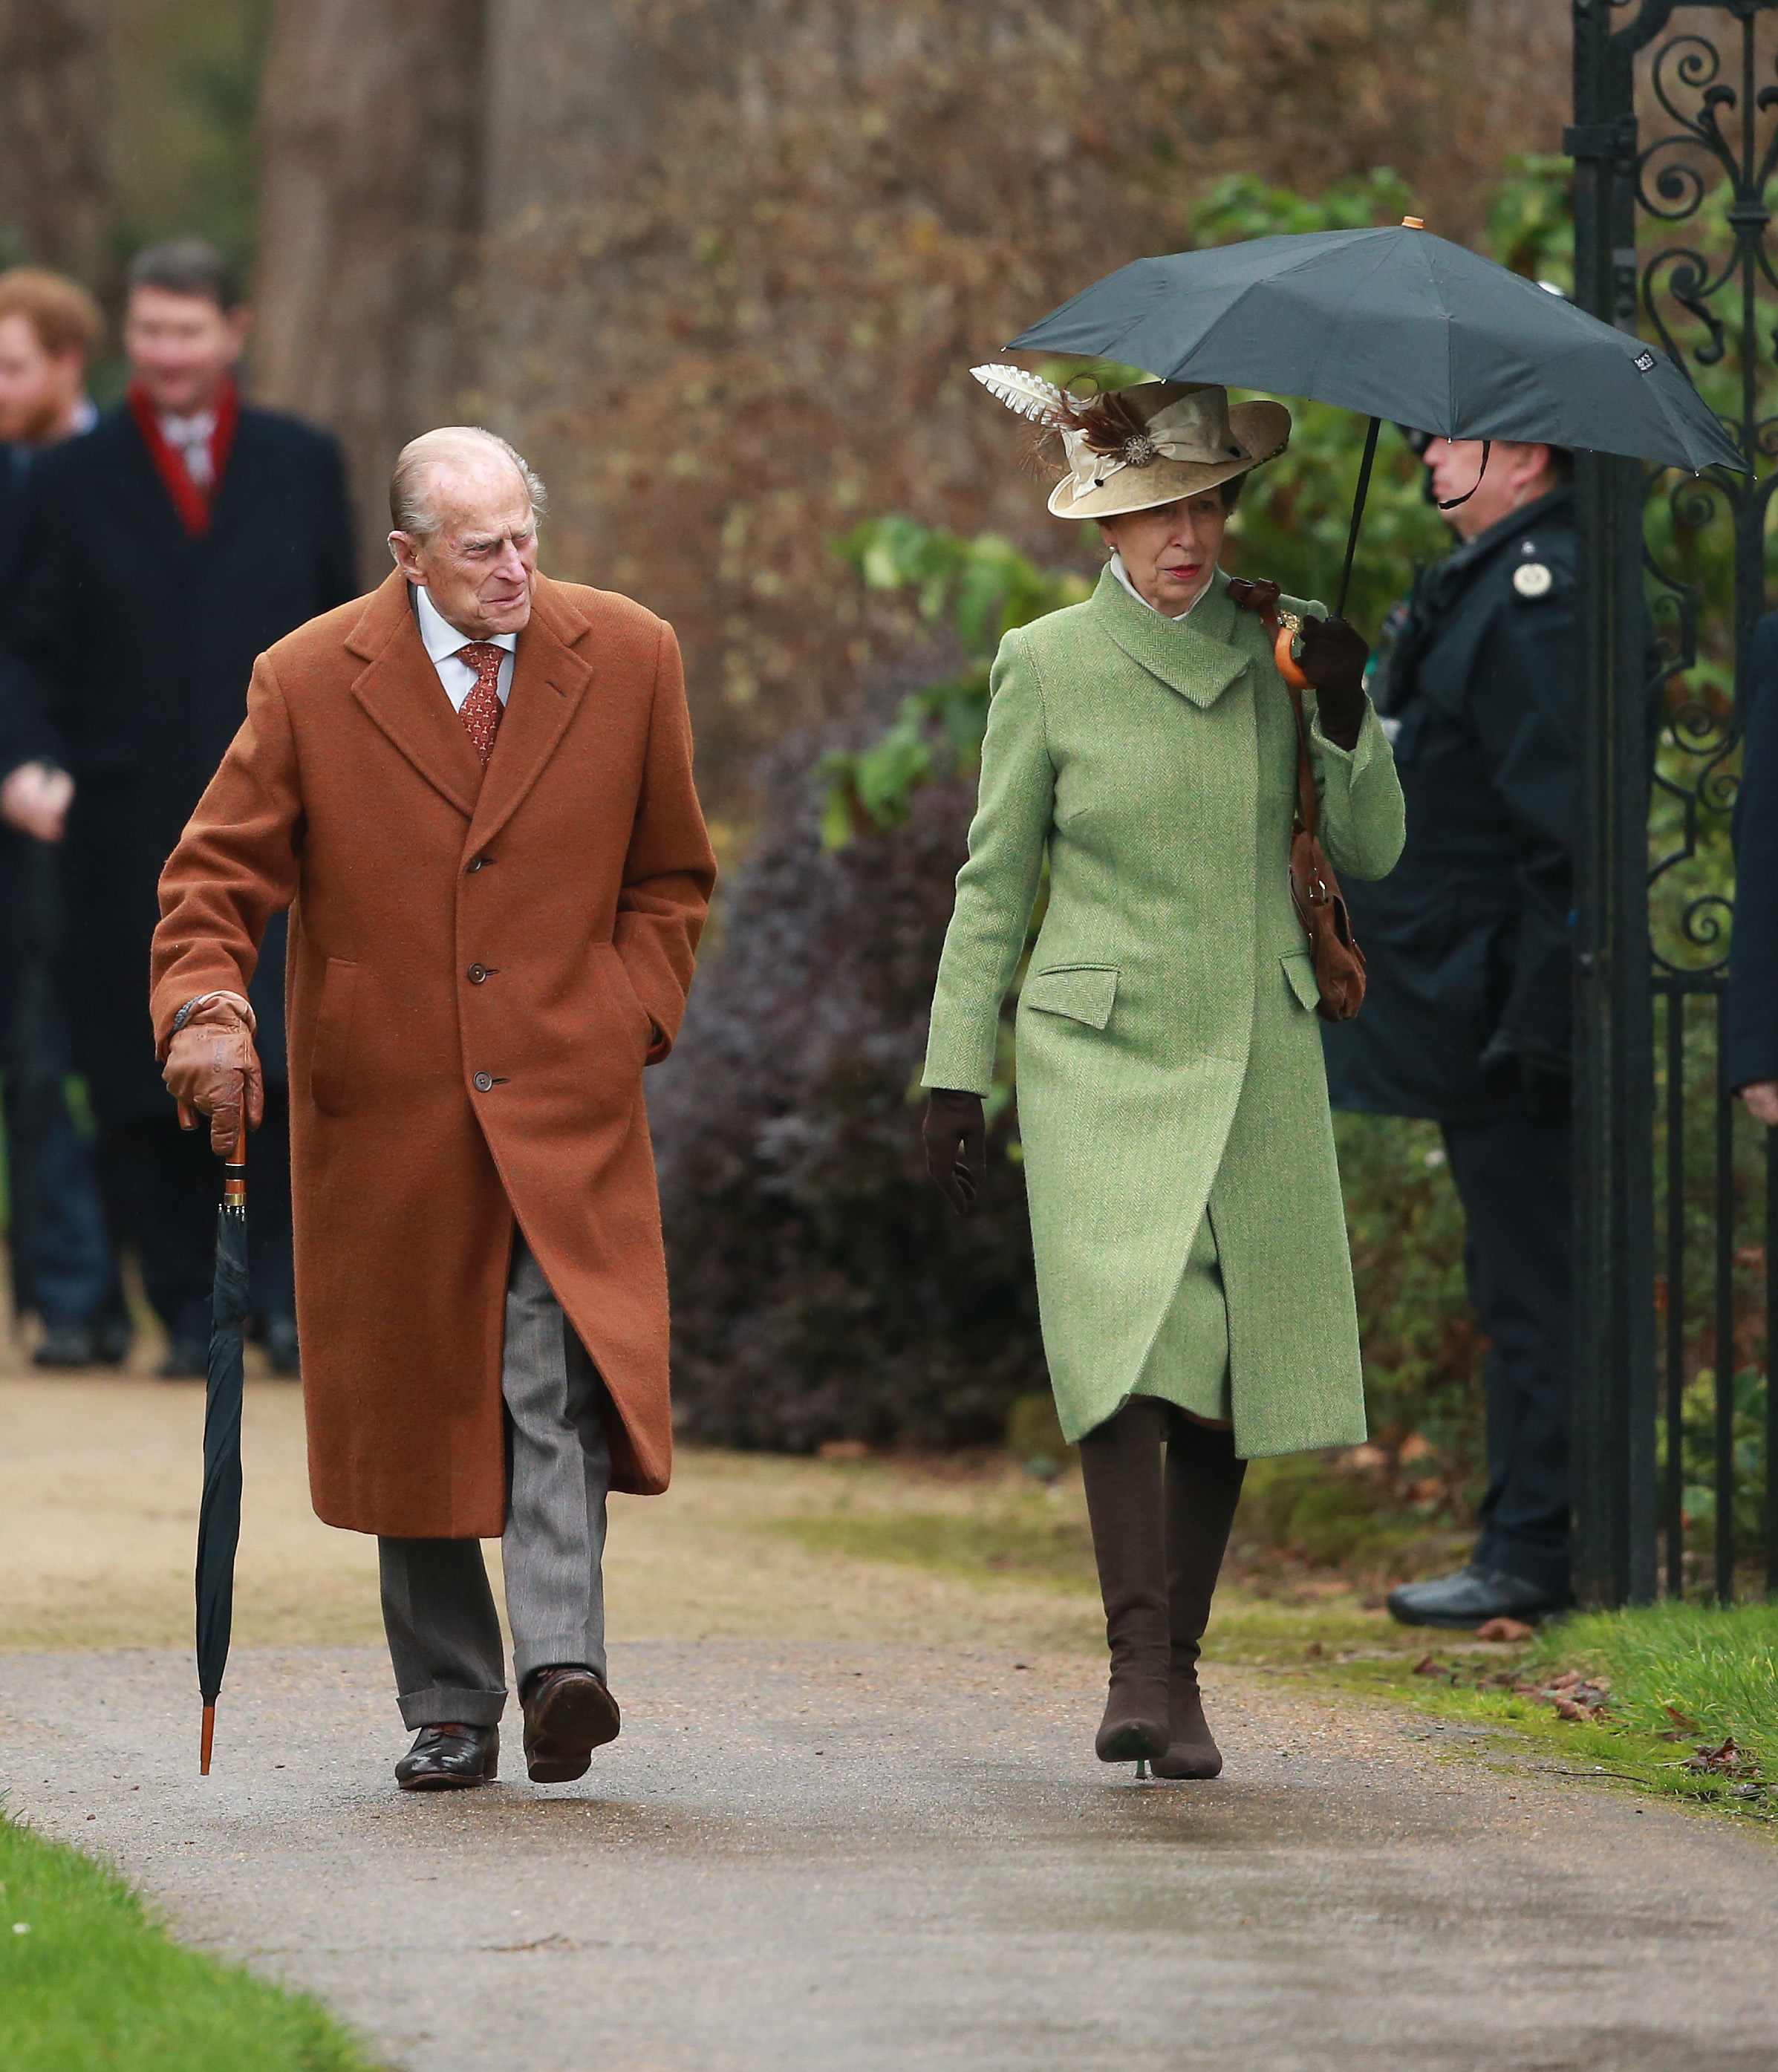 KING'S LYNN, ENGLAND - DECEMBER 25: Prince Philip, Duke of Edinburgh and Princess Anne, Princess Royal attend a Christmas Day church service at Sandringham on December 25, 2015 in King's Lynn, England. (Photo by Chris Jackson/Getty Images)